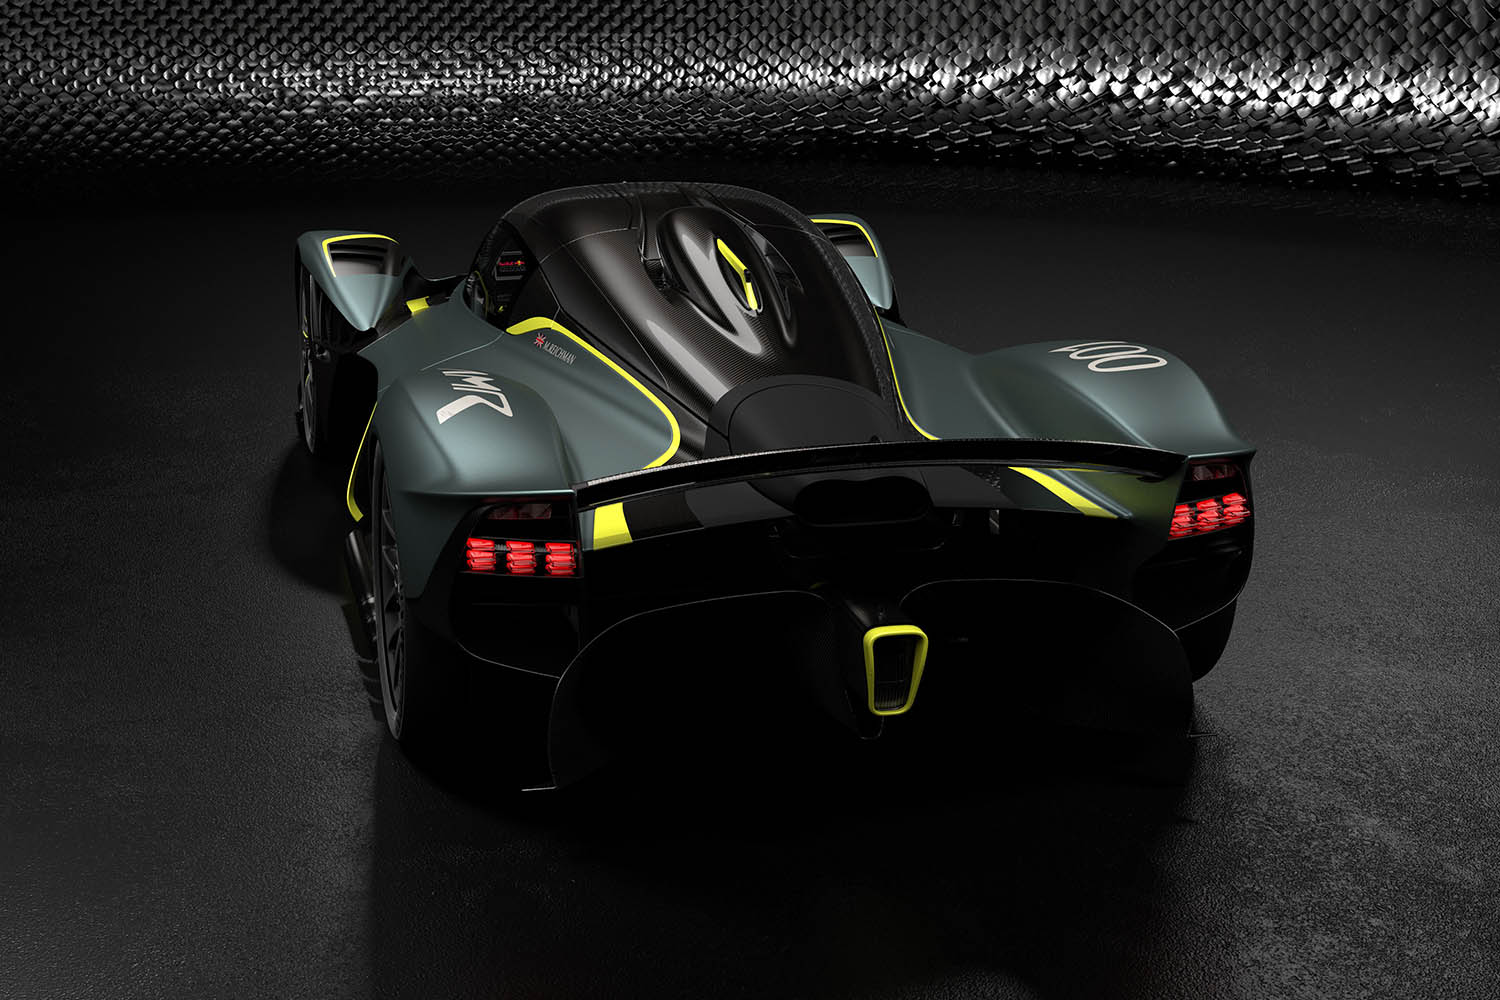 Aston Martin Valkyrie with AMR Track Performance Pack - Stirling Green and Lime livery (2).jpg